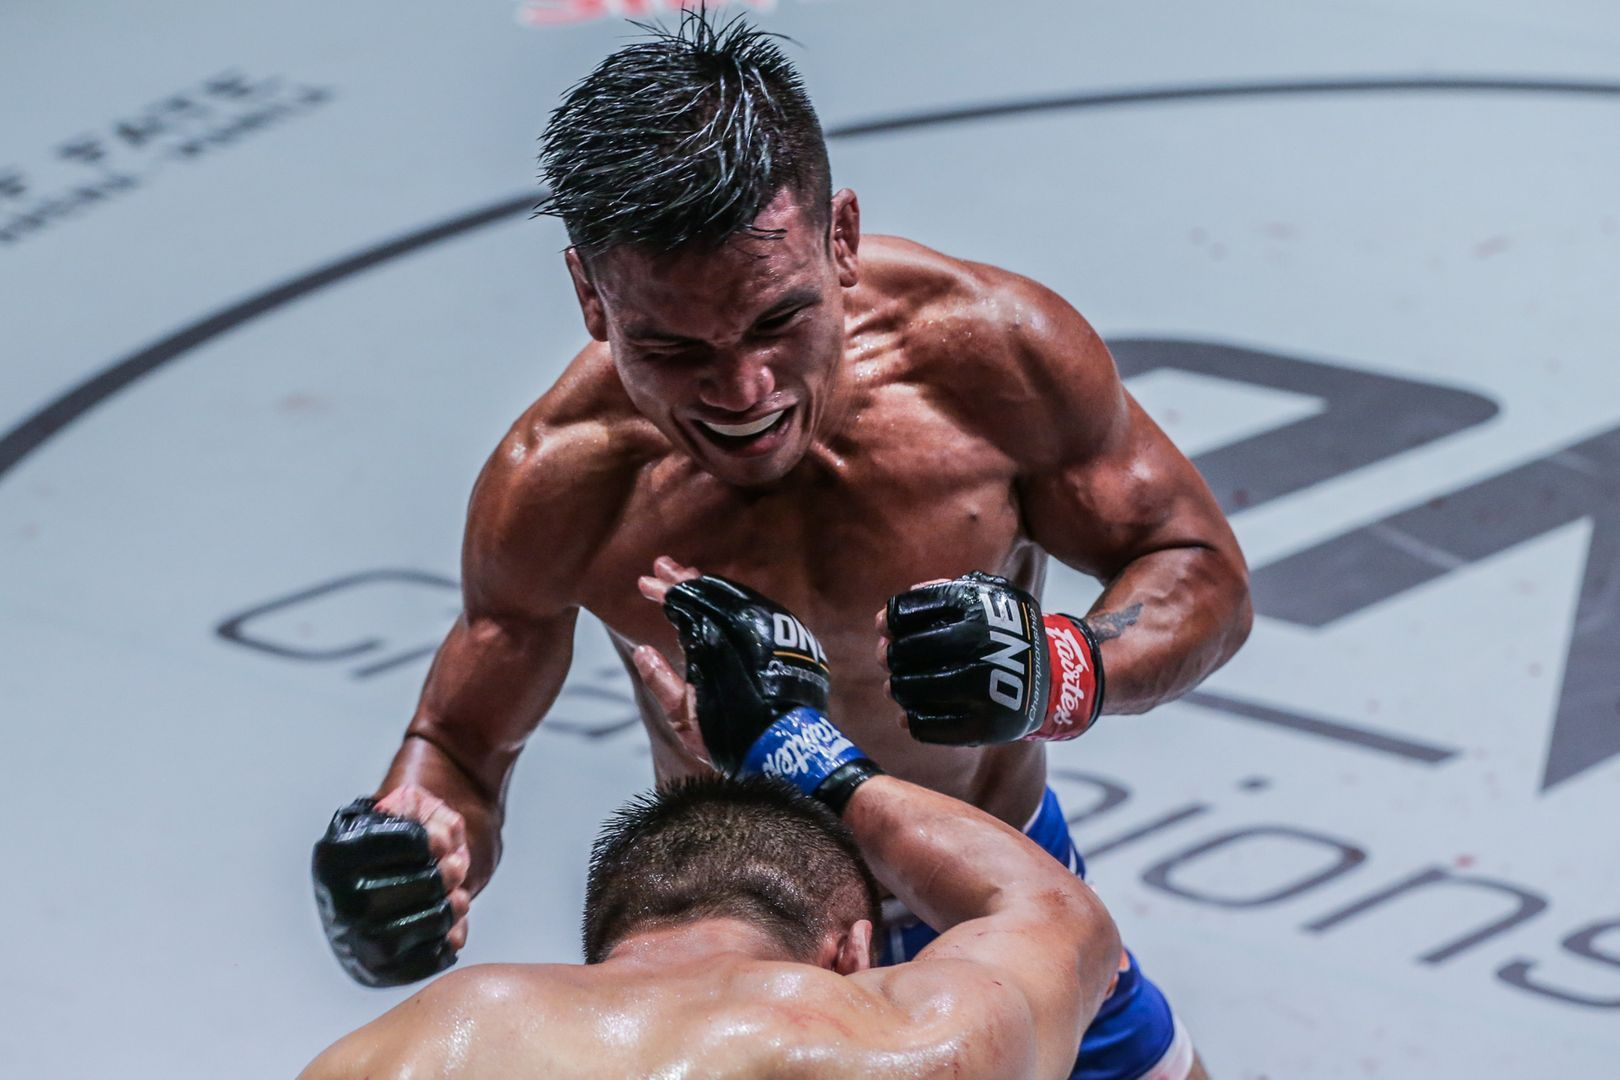 Mark Fairtex Abelardo strikes down China's Ayideng Jumayi in Jakarta, Indonesia in October 2019